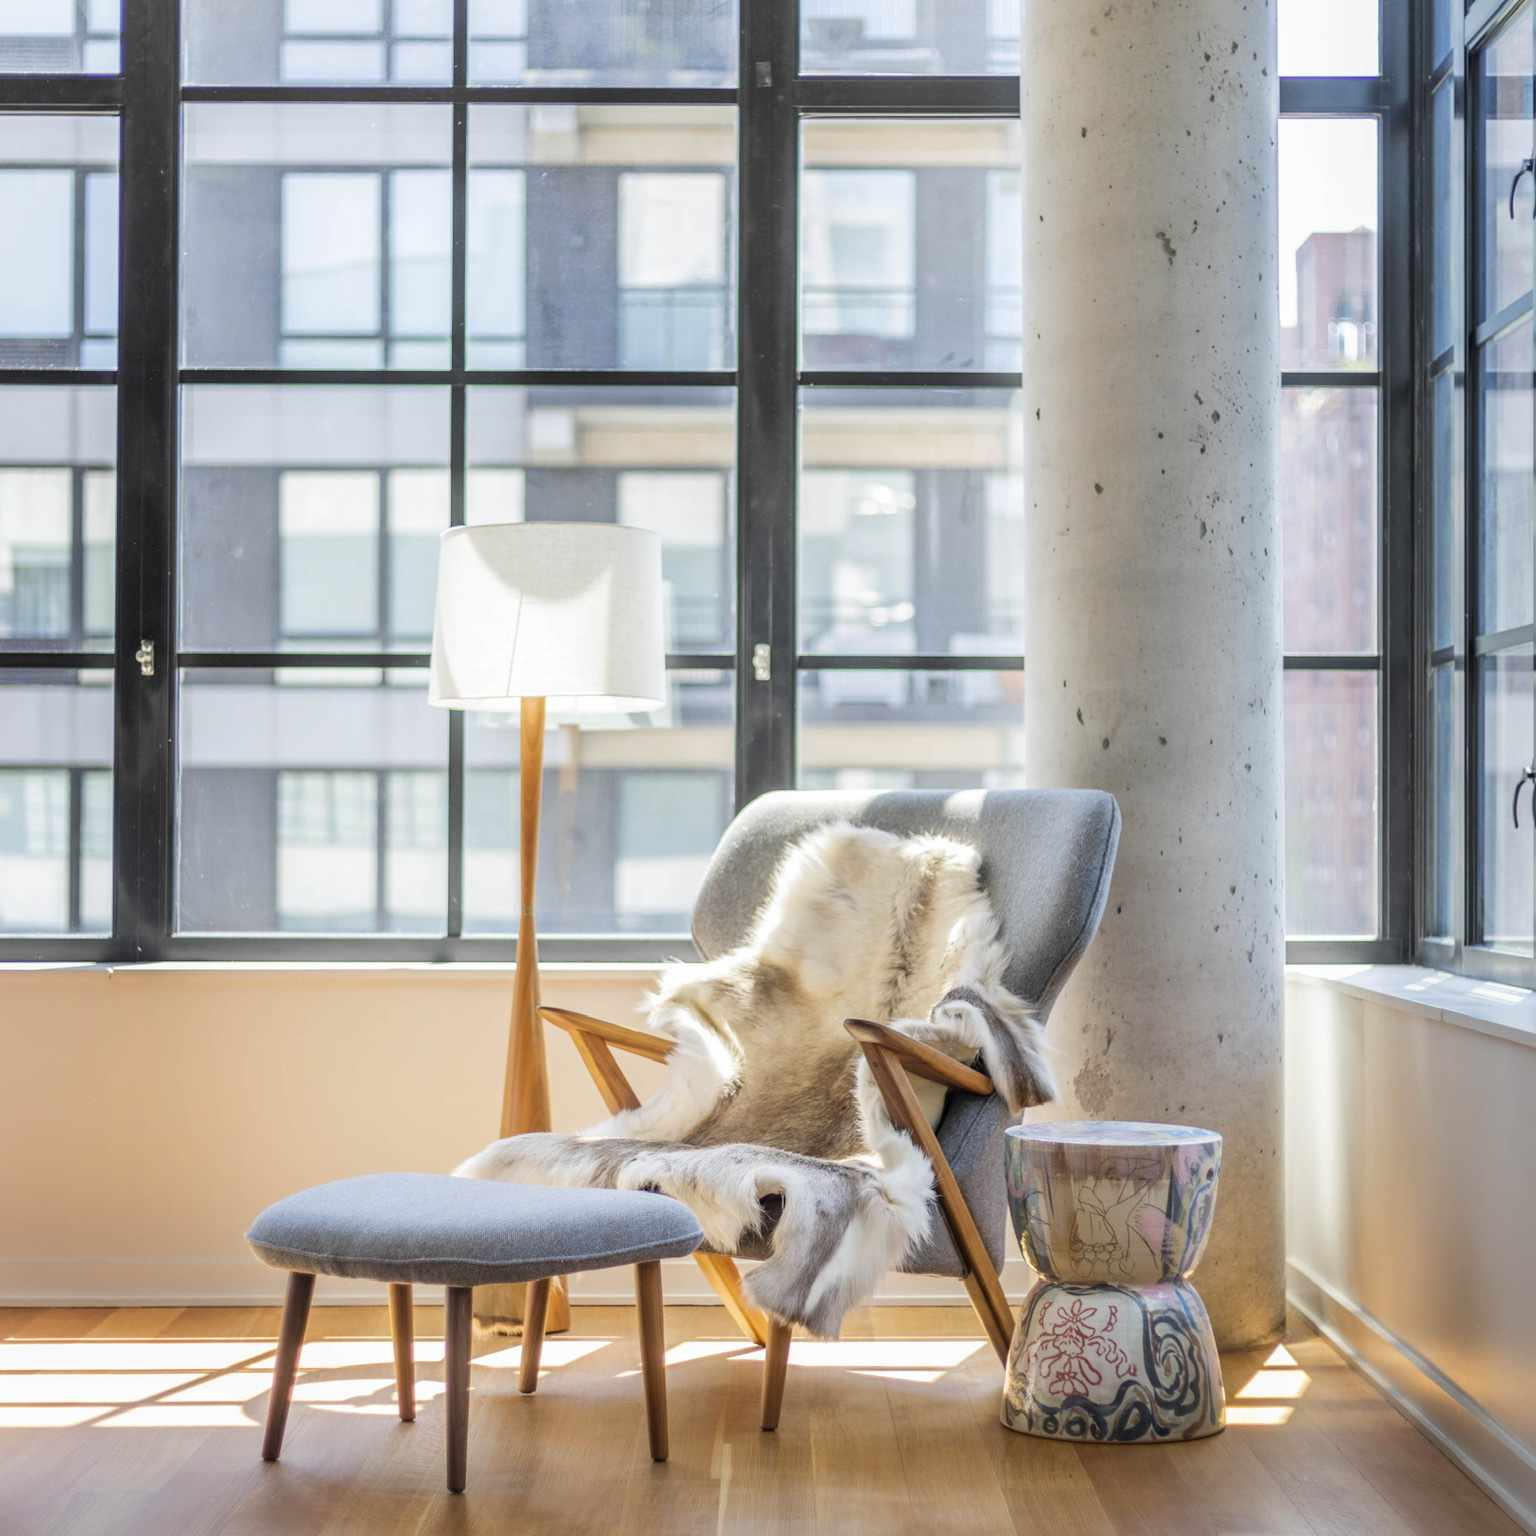 yael weiss nyc apartment - bedroom with floor to ceiling windows and reading chair